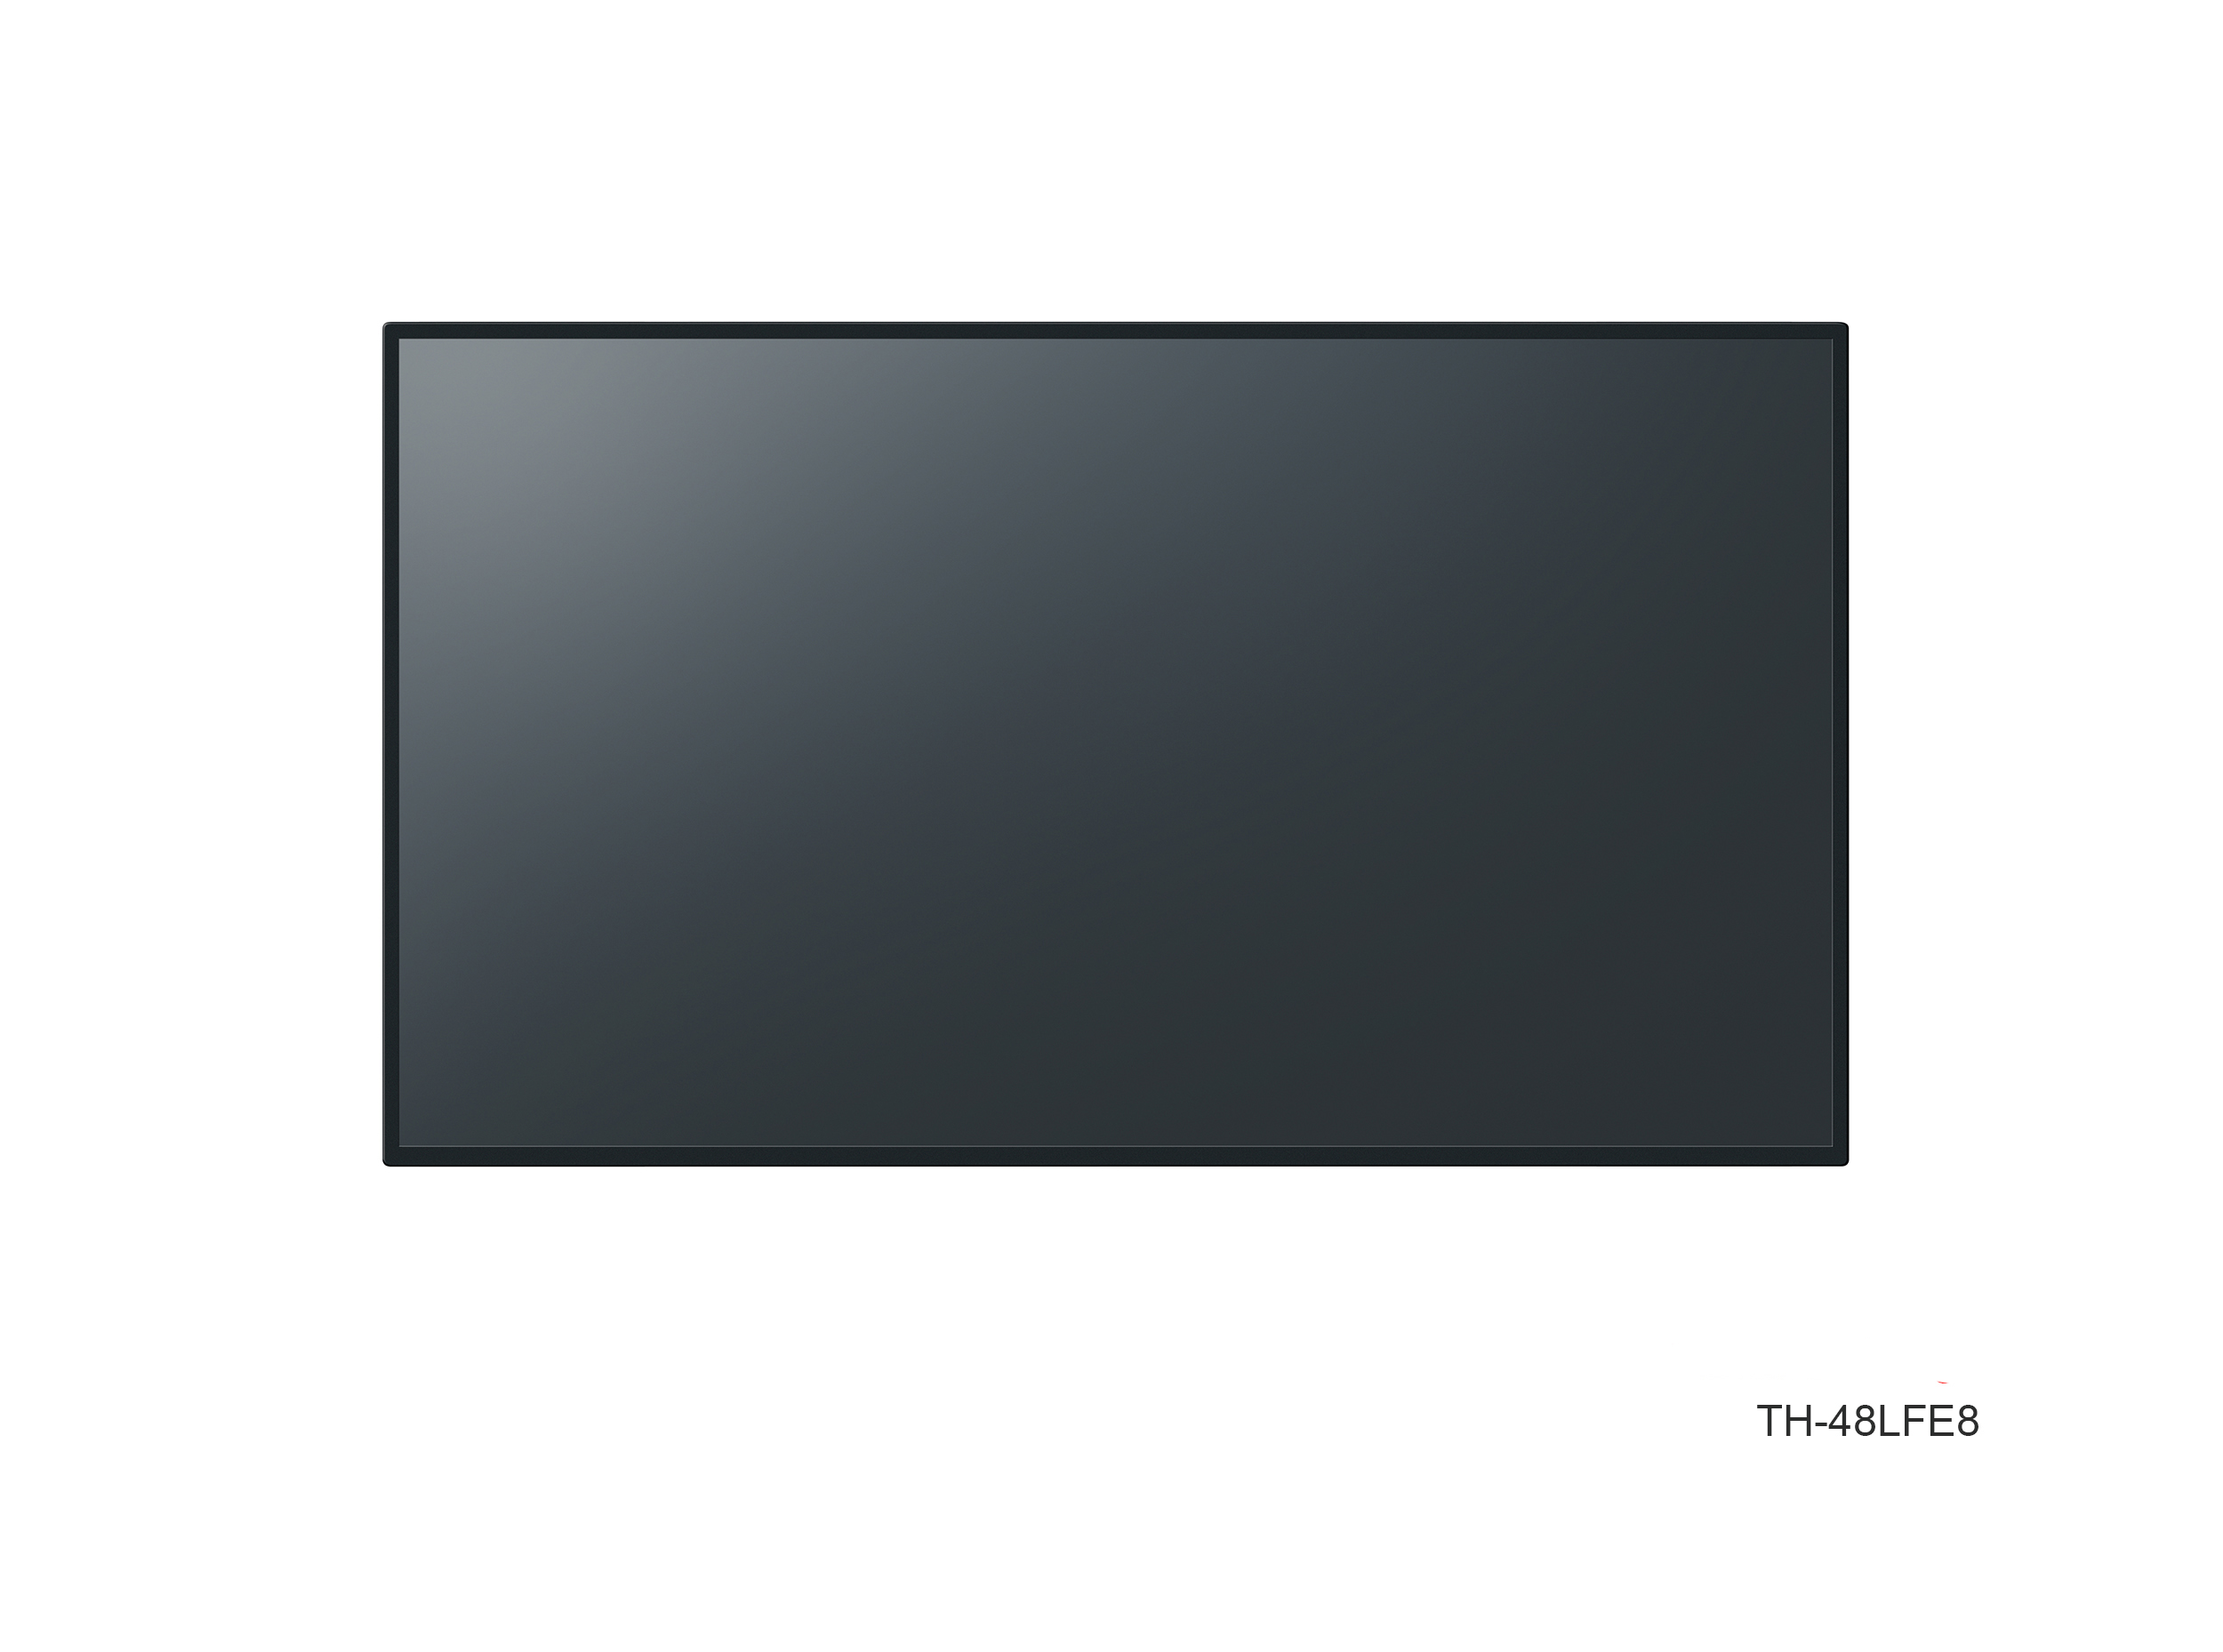 PANASONIC TH-48LFE8E LED PROFESSIONAL DISPLAY